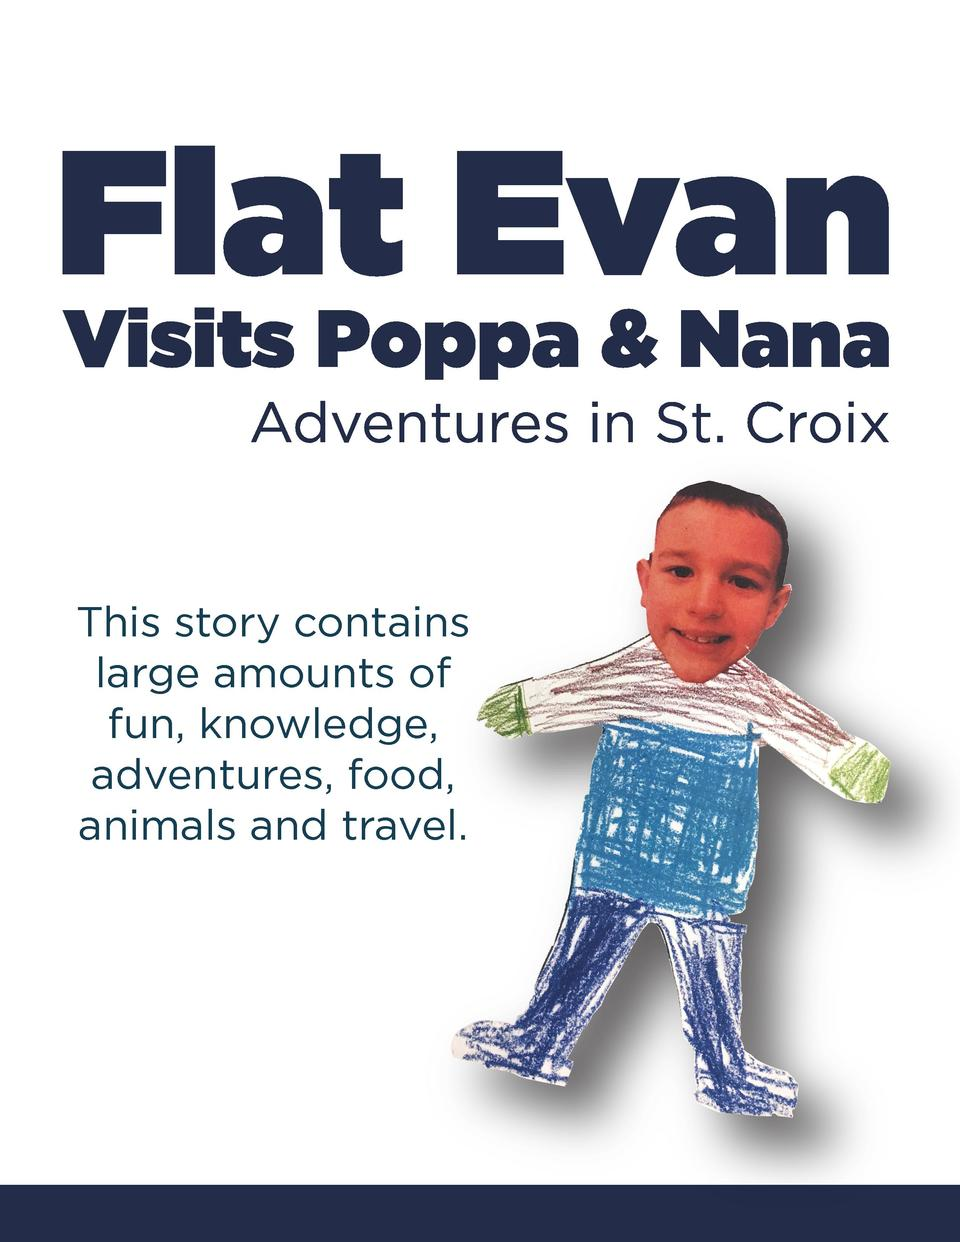 This story contains large amounts of fun, knowledge, adventures, food, animals and travel.